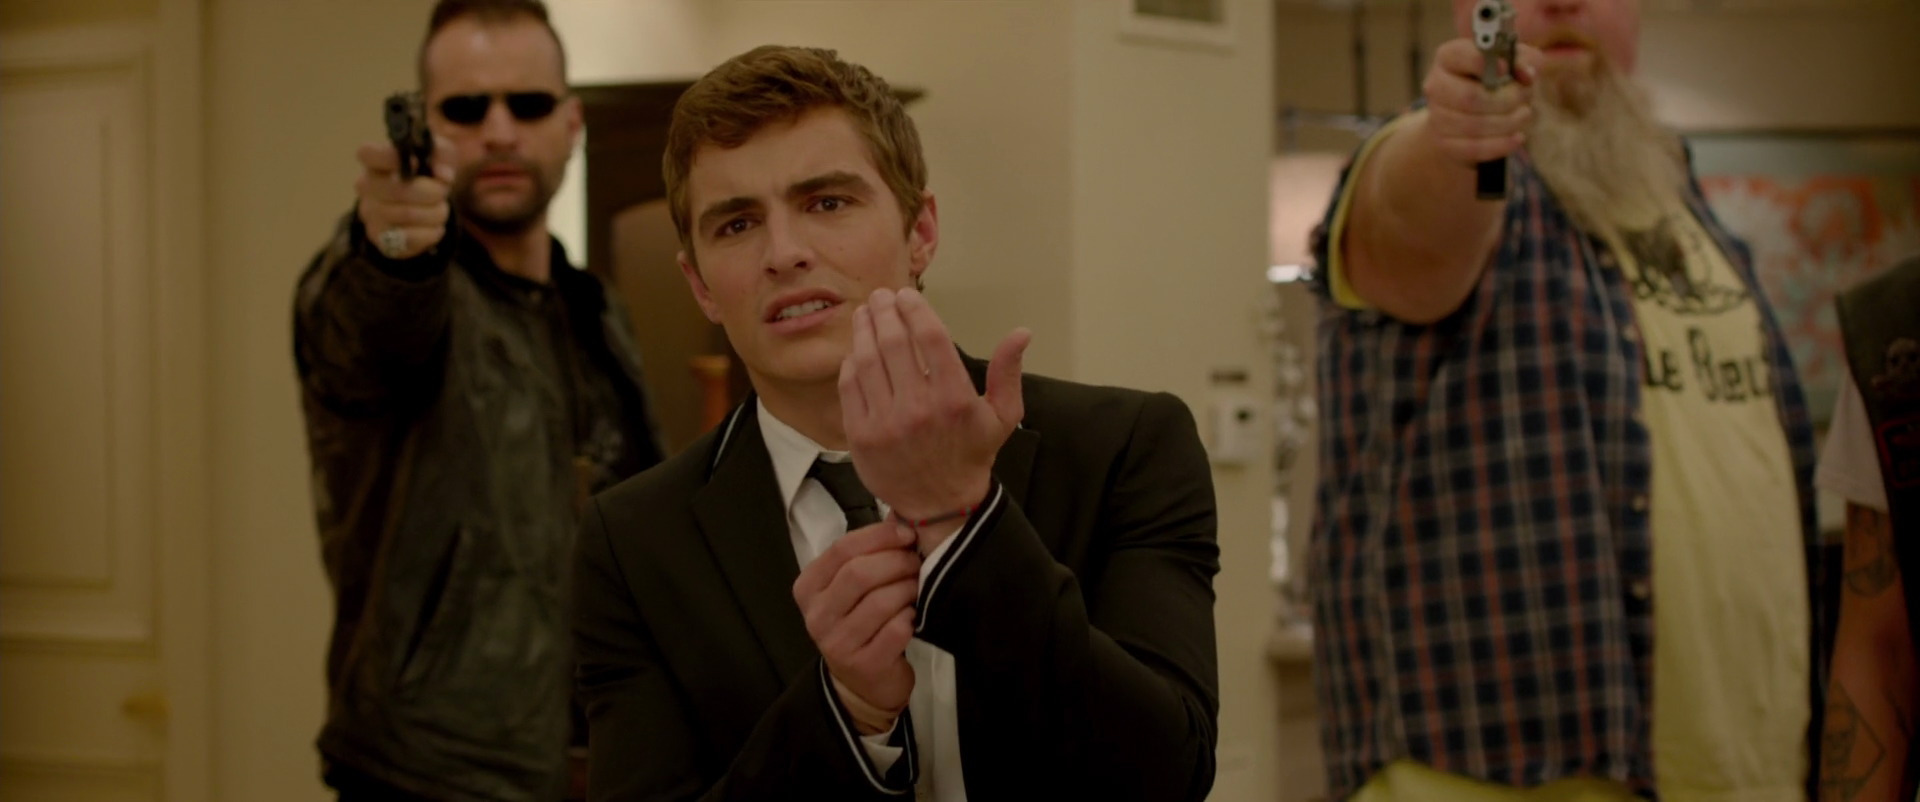 21 jump street 2012 dave franco photo 34905479 fanpop